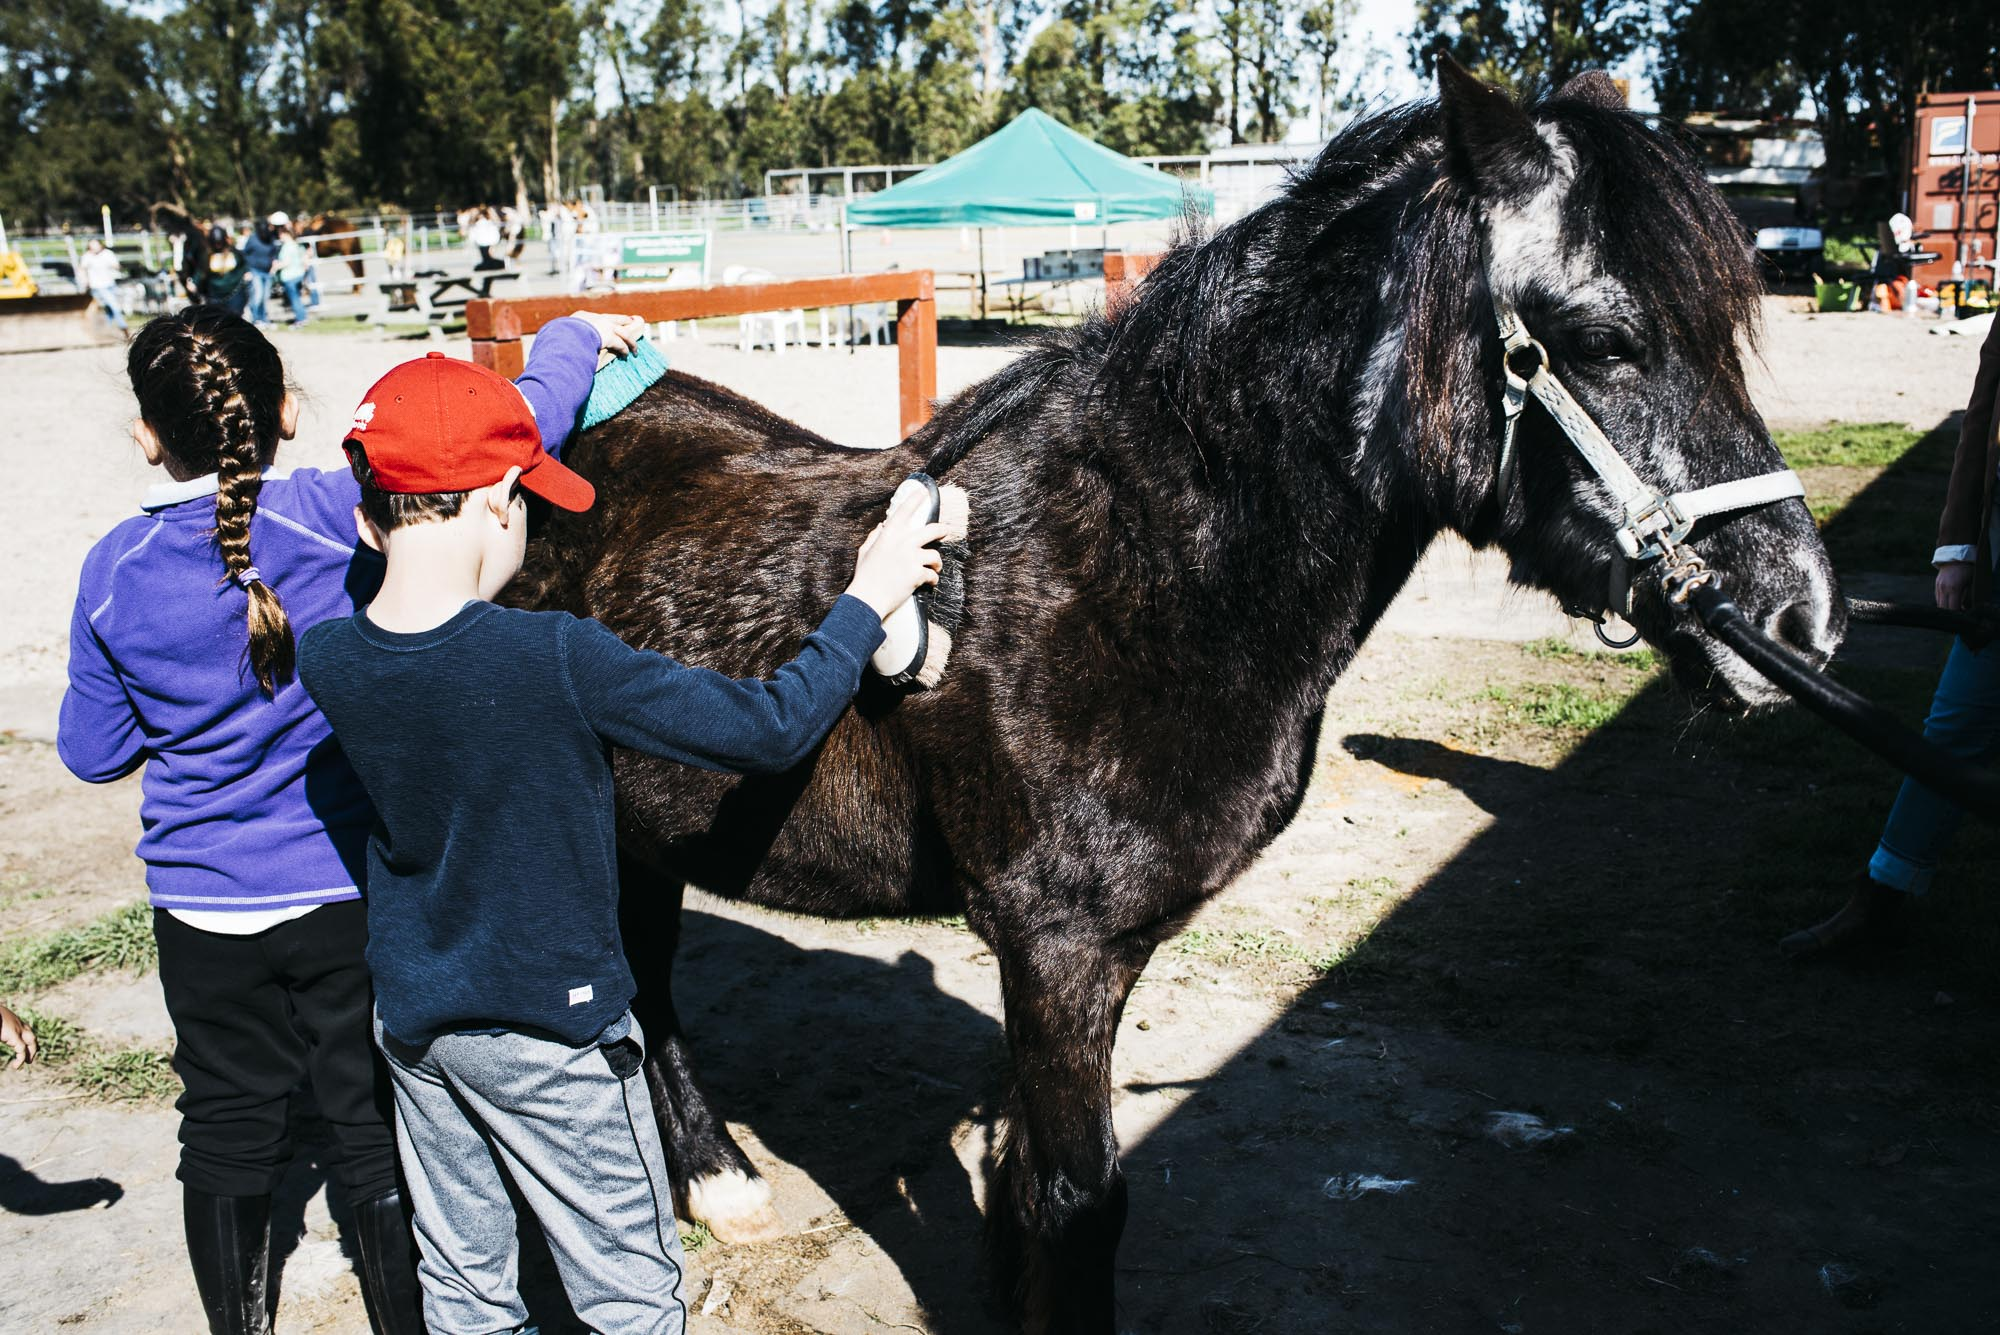 The kids learning grooming and horse safety.